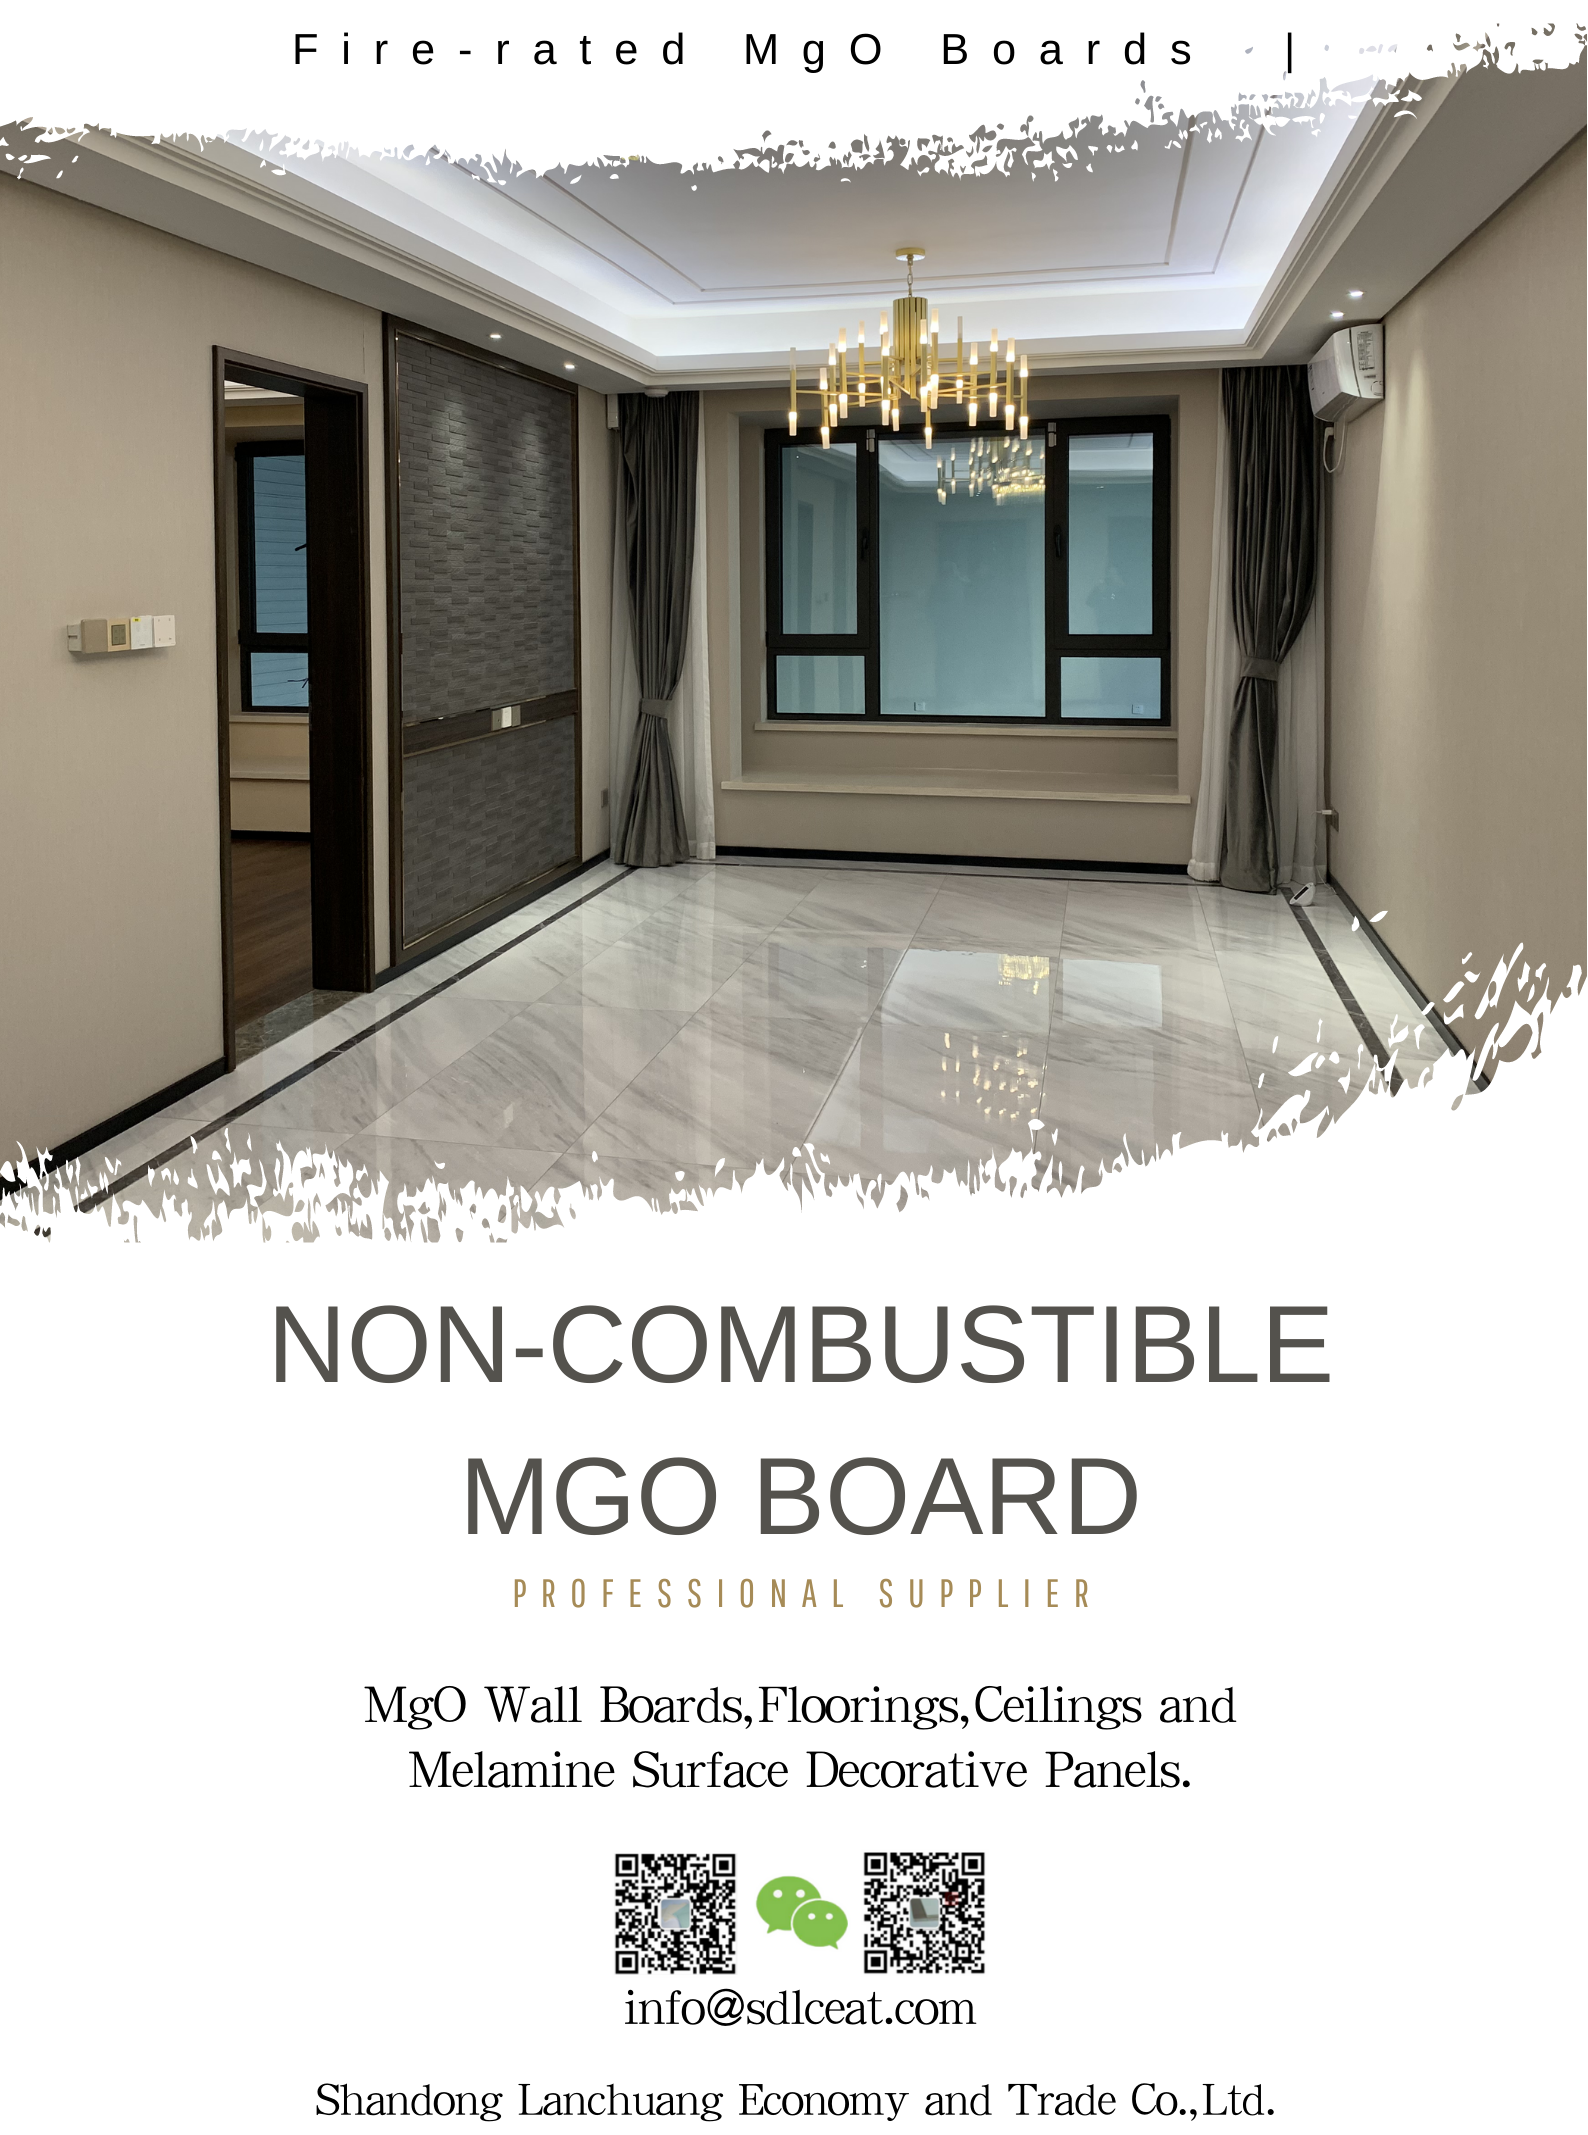 Fire-rated MgO Ceiling